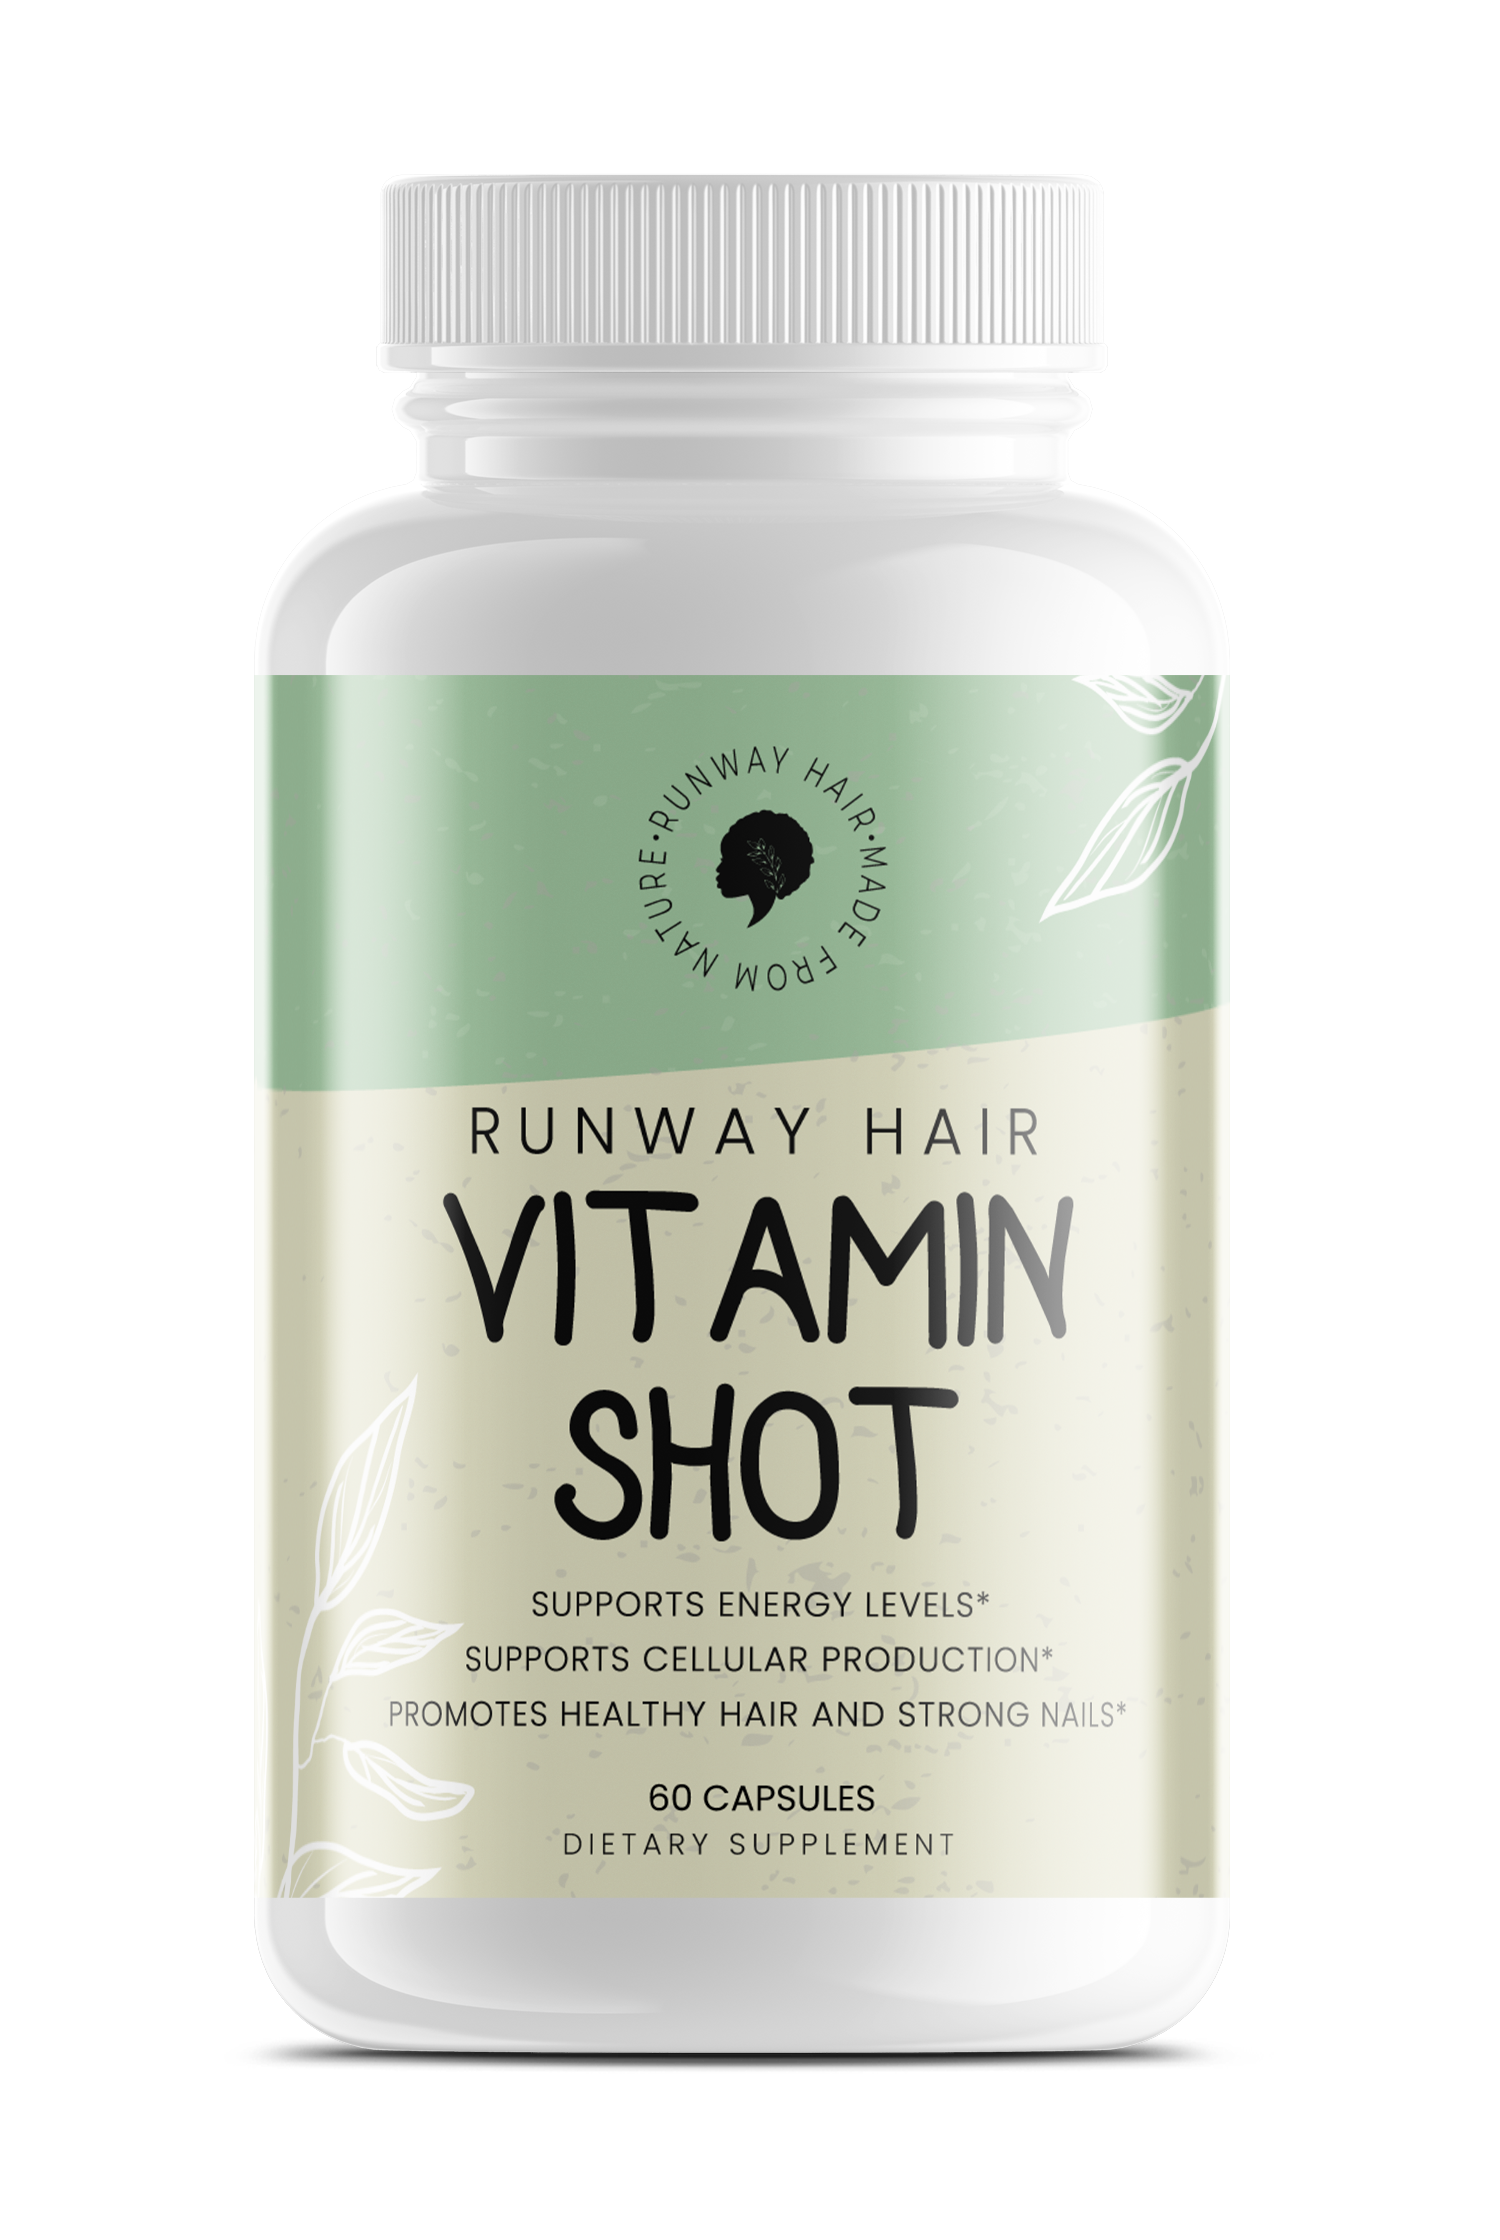 Runway Hair Vitamin Shot